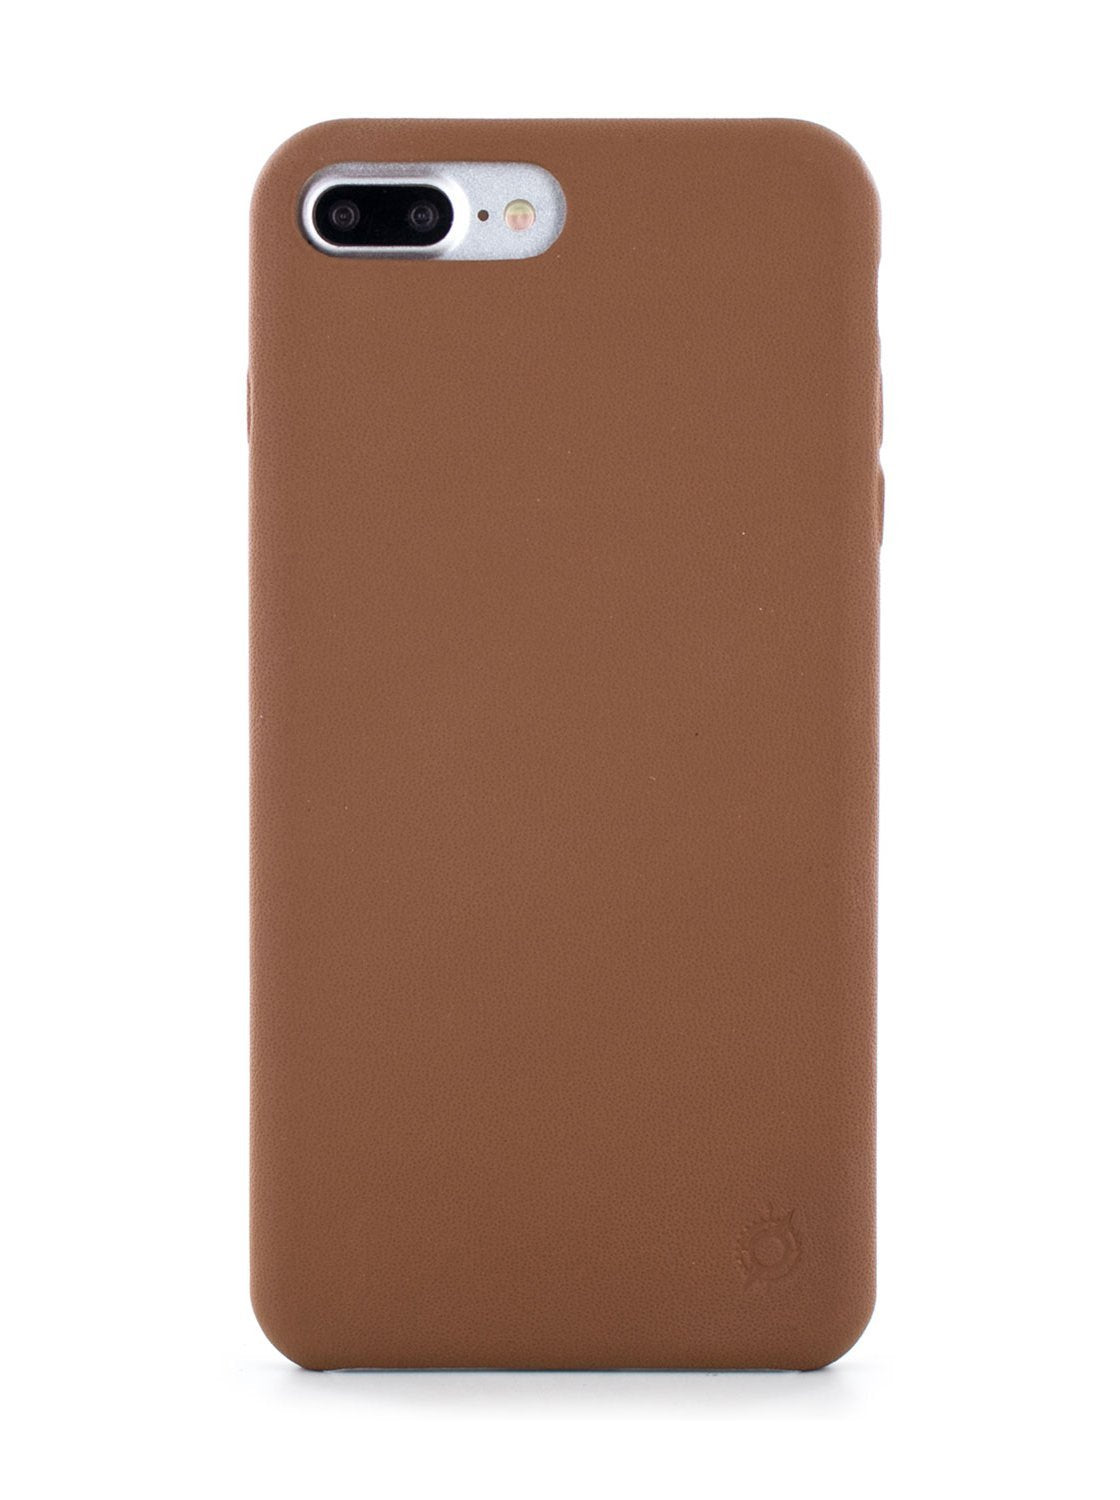 AEON Luxury Leather Back Shell for iPhone 8 Plus / 7 Plus In Saddle (Brown)